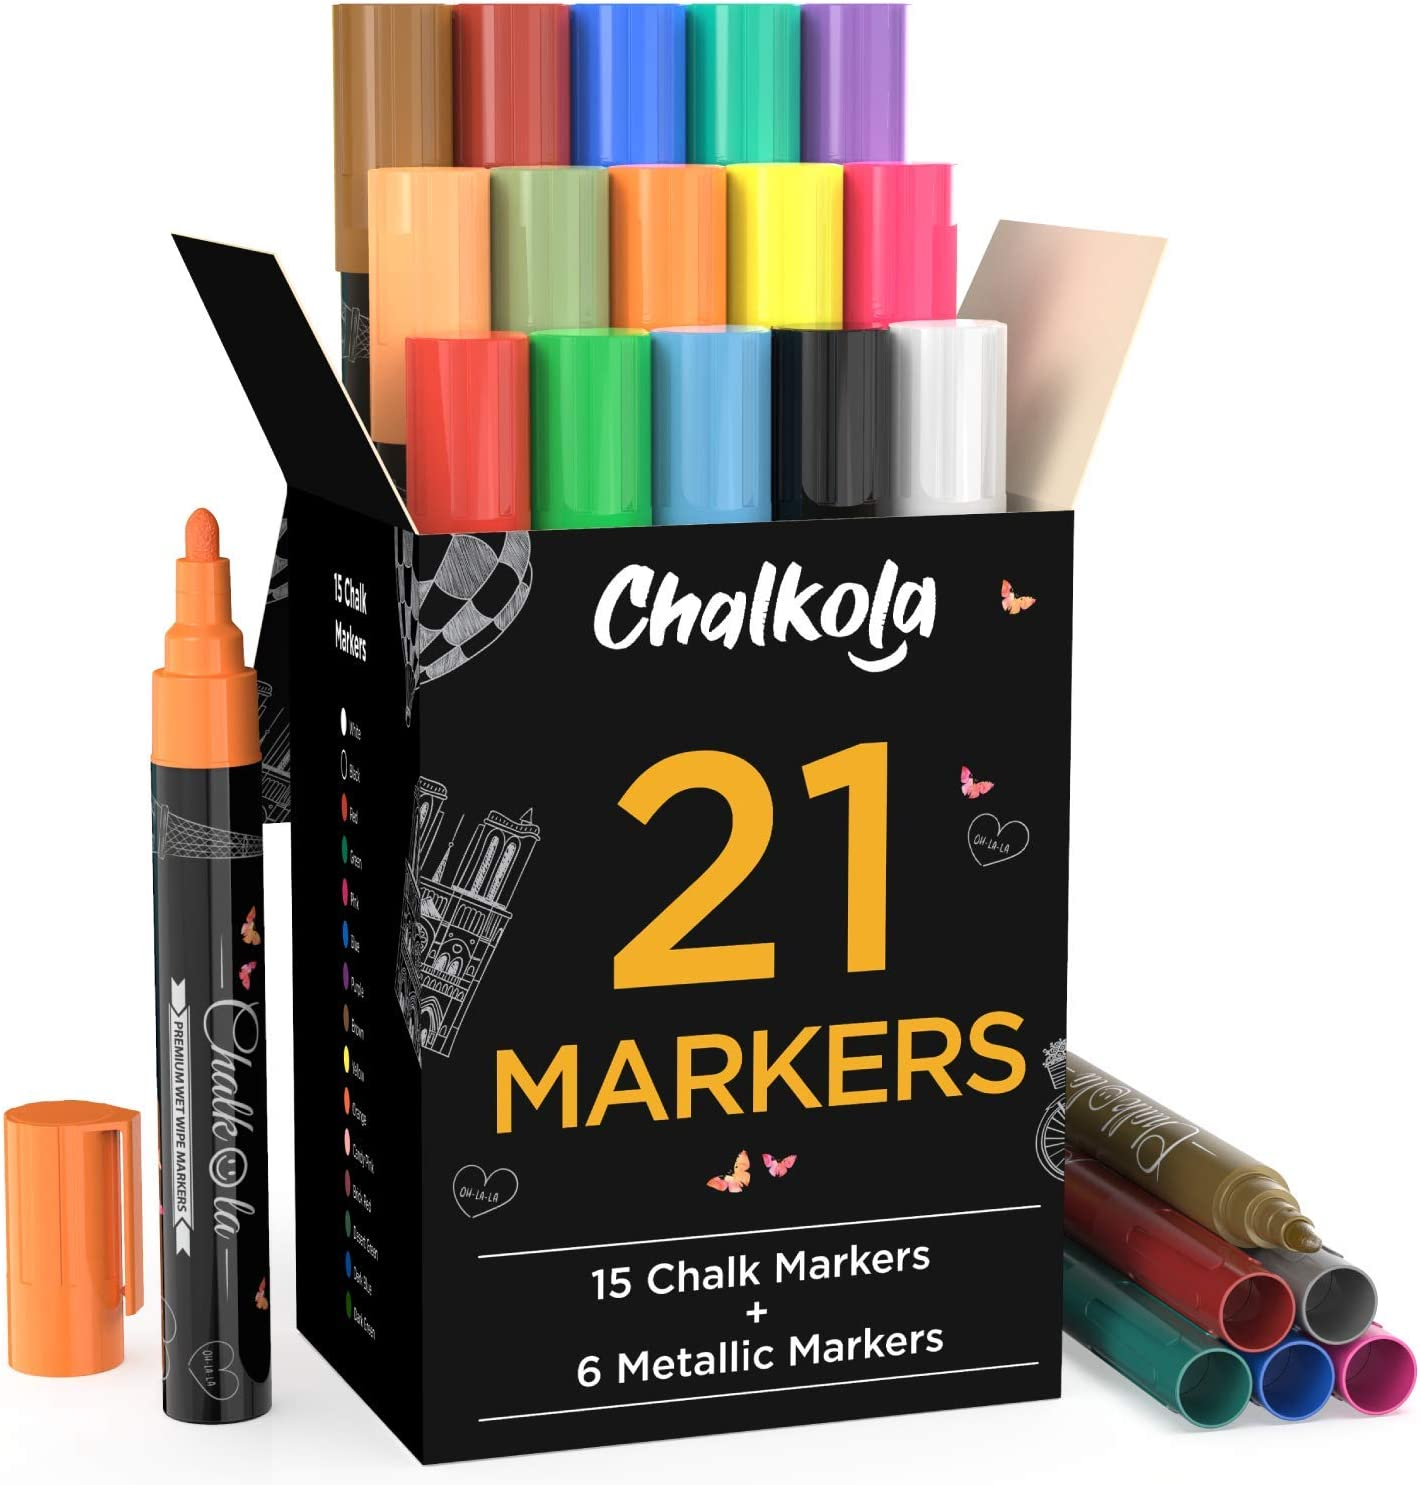 10 Jumbo Markers Exciting Vibrant and Beautiful Colours FUN FOR 3+